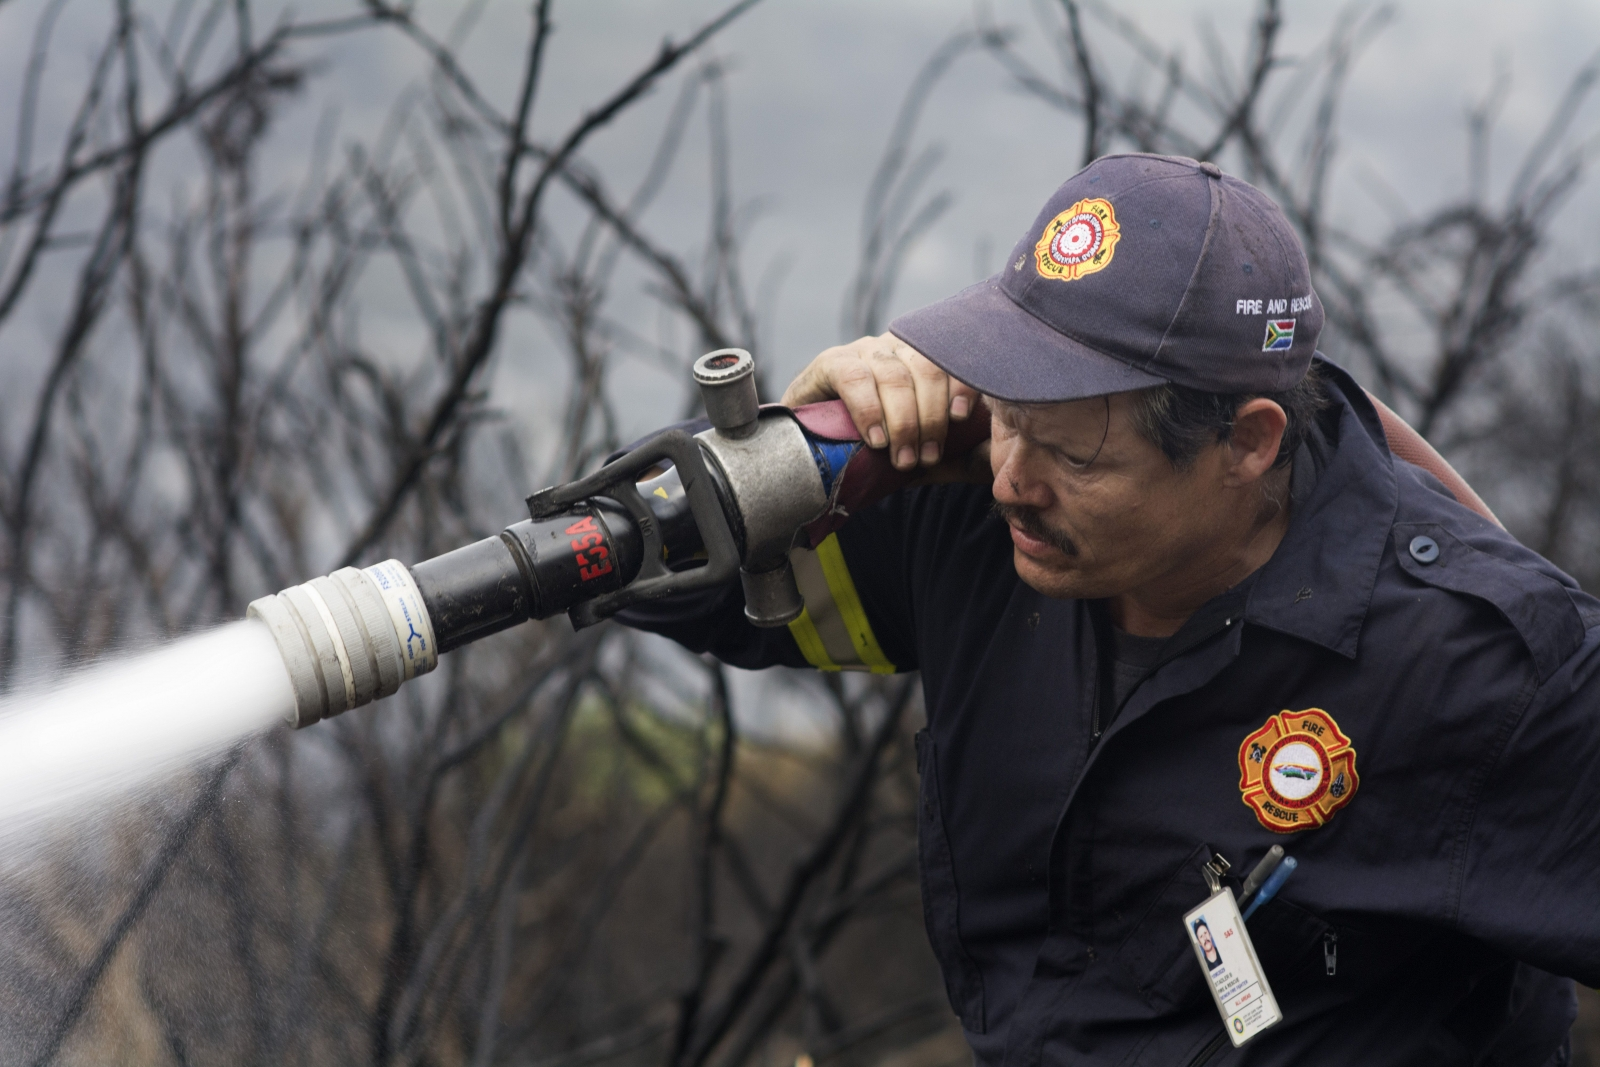 South African fire fighter